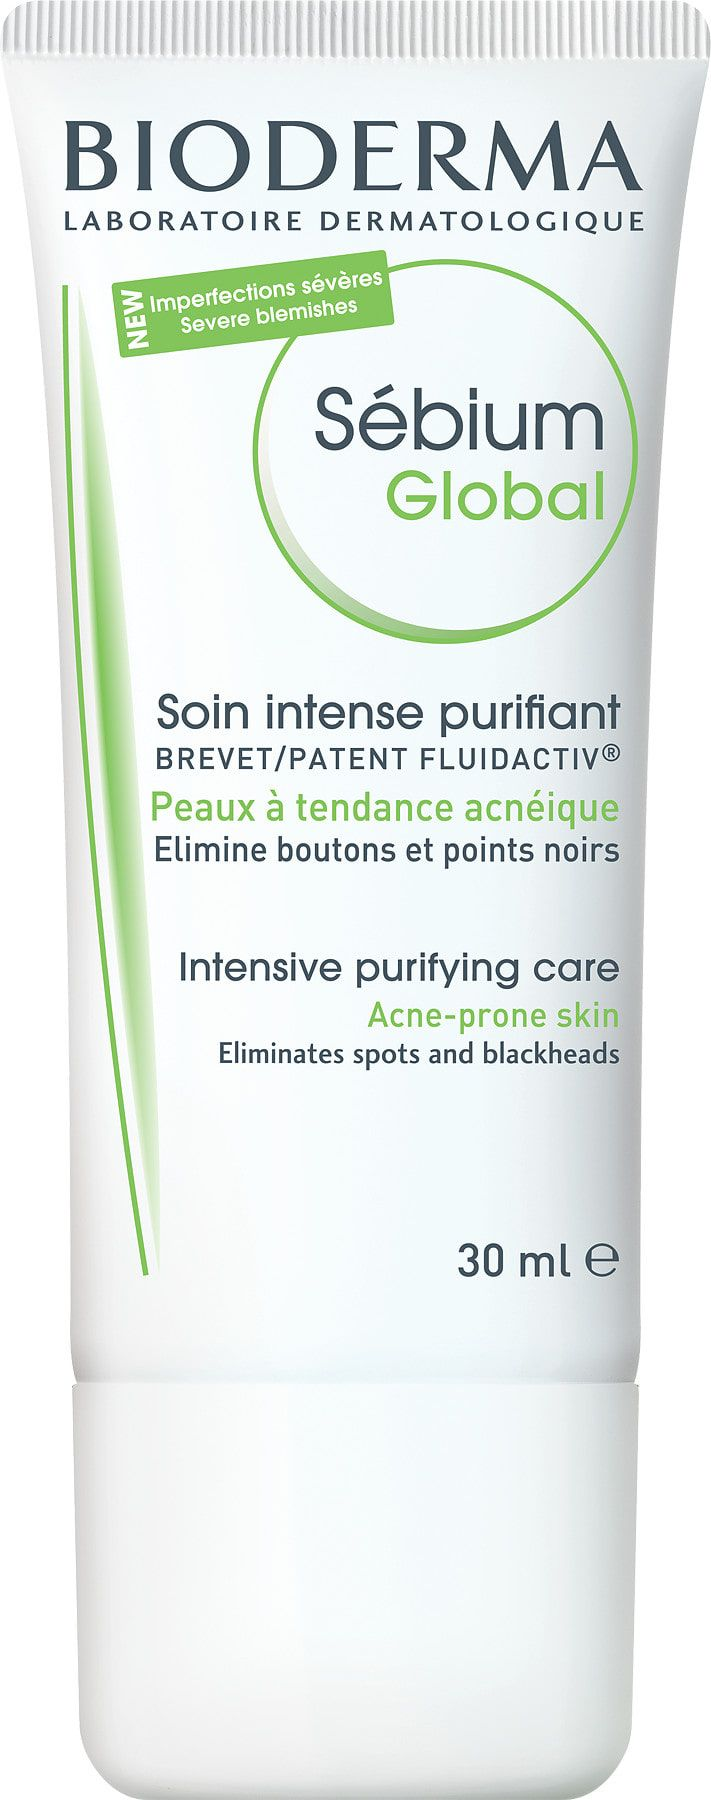 Bioderma Sebium Global - Intensive Purifying Care